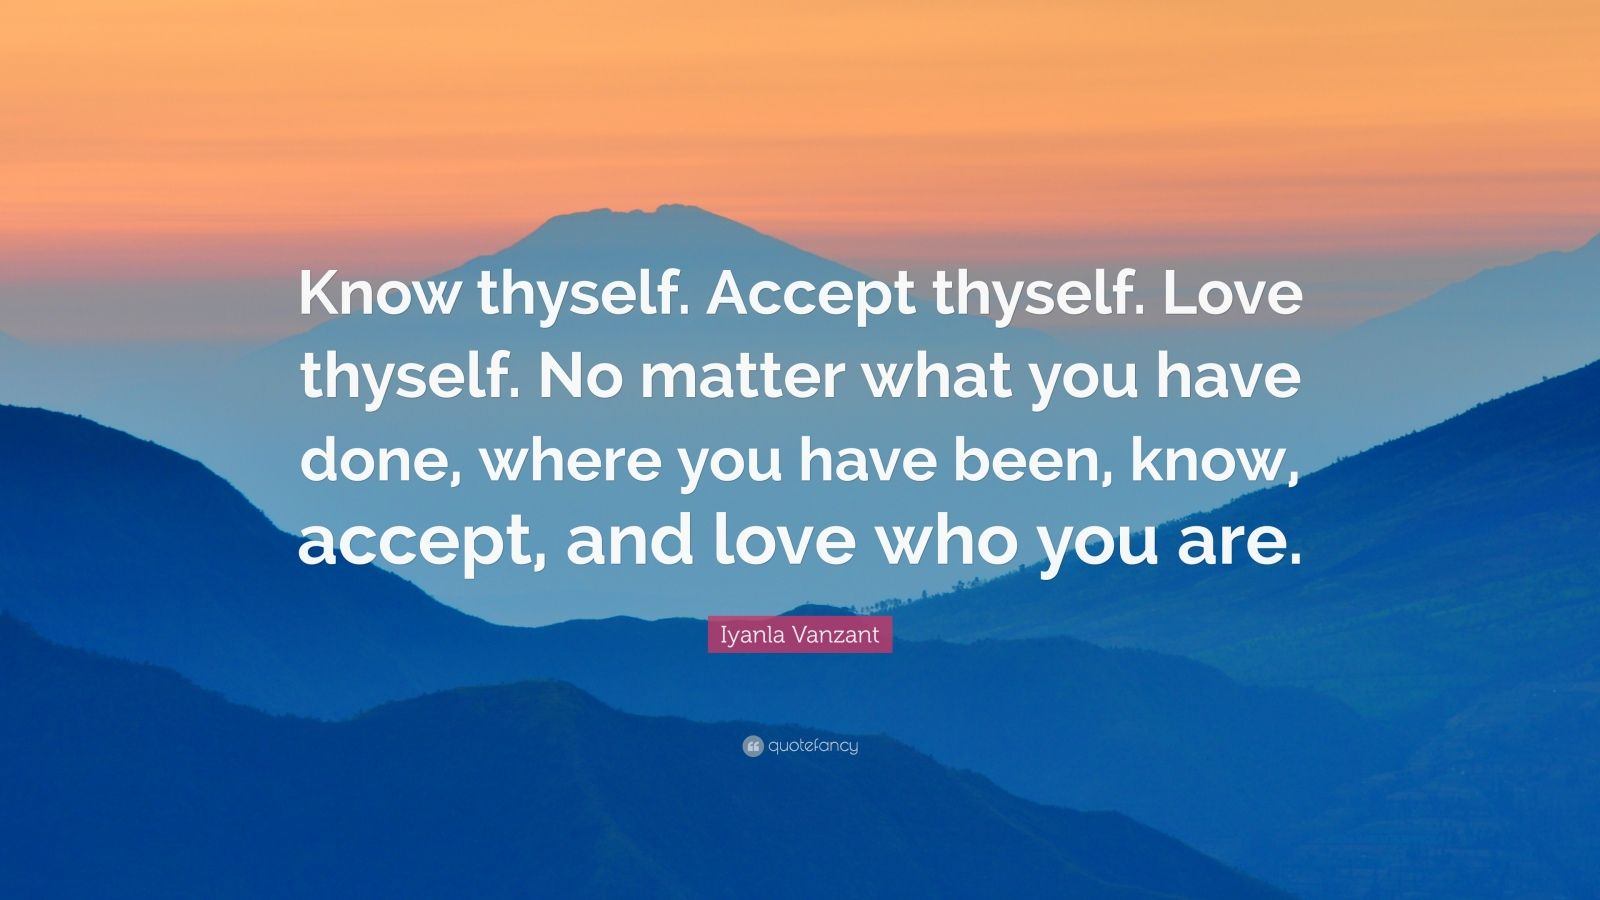 "Iyanla Vanzant Quote: ""Know thyself. Accept thyself. Love thyself. No matter what you have done, where you have been, know, accept, and love who you are."""